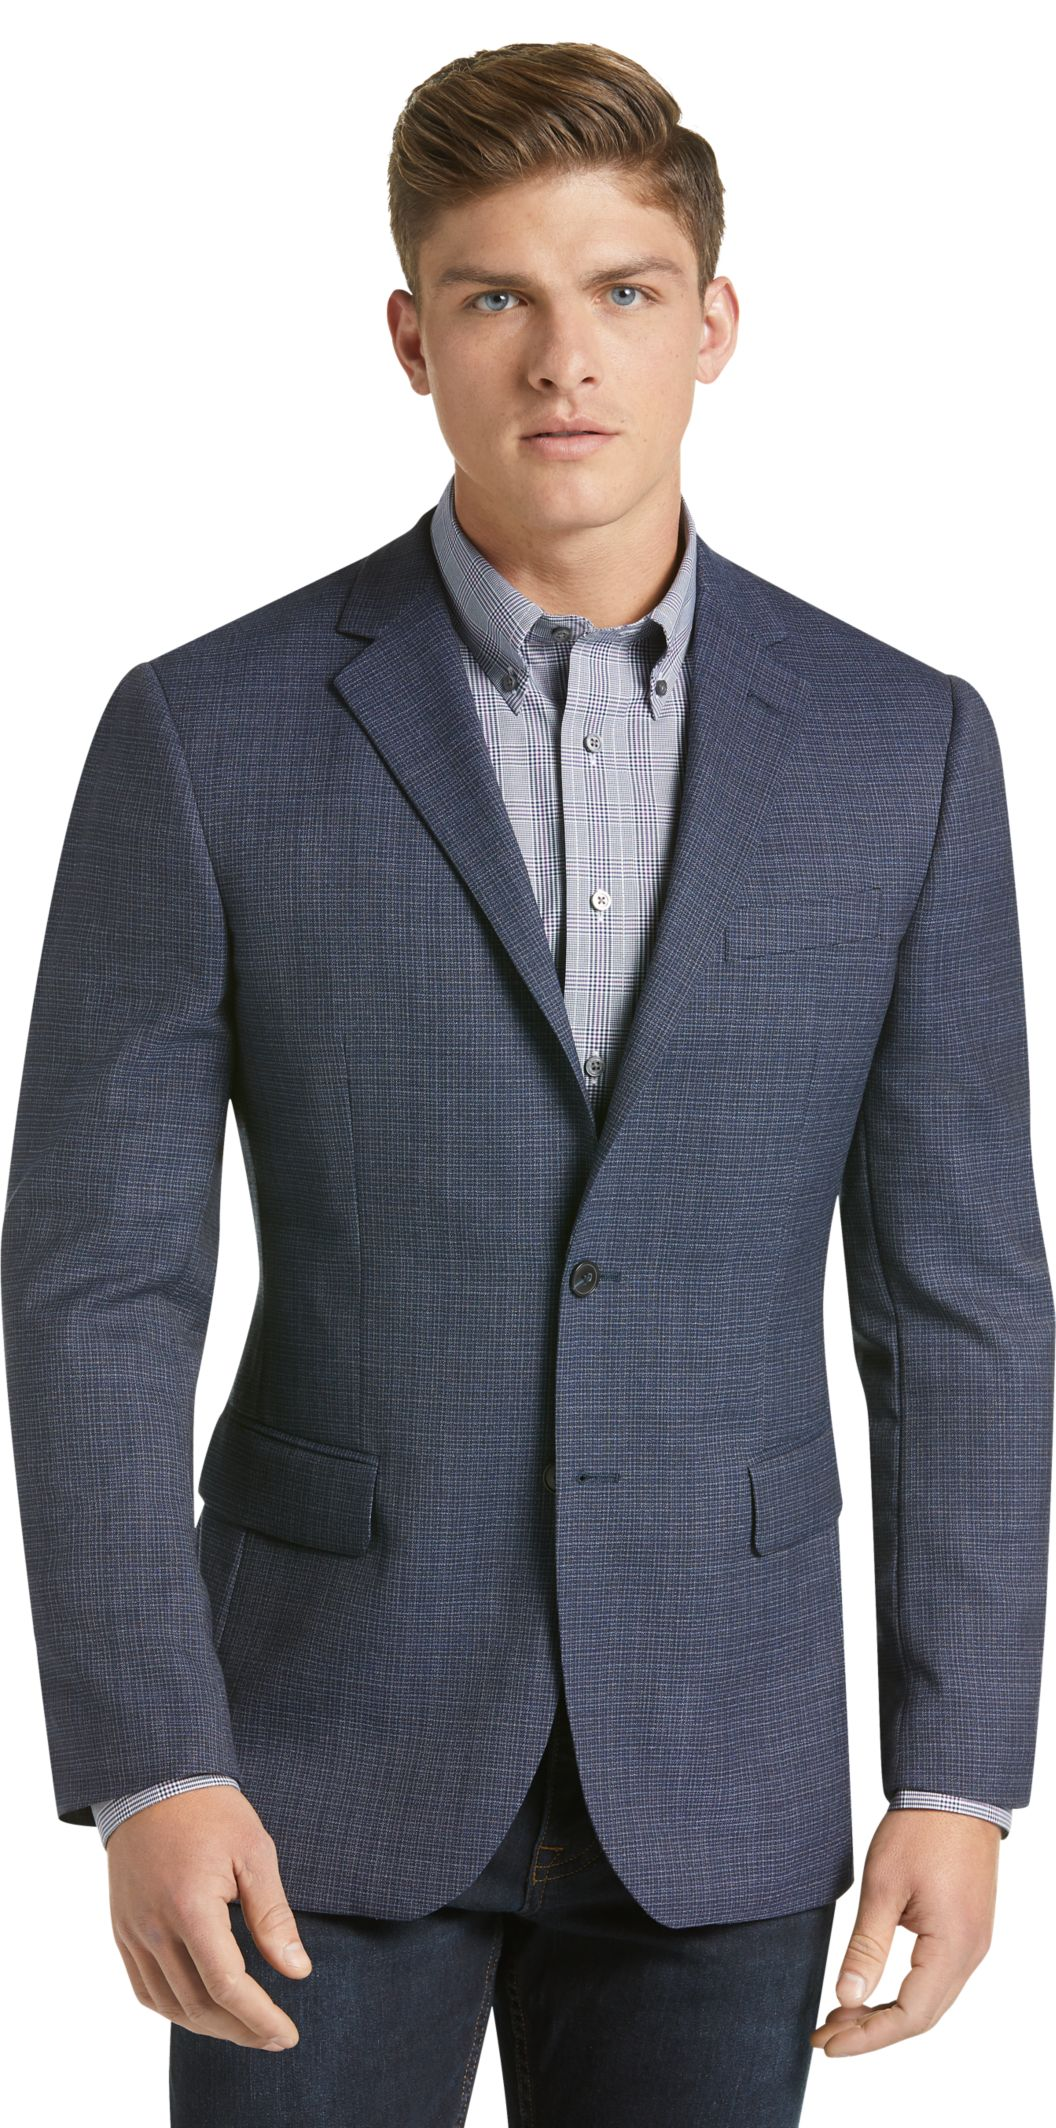 ca96e2132b3 Traveler Collection Slim Fit Woven Pattern Sportcoat - Big   Tall ...